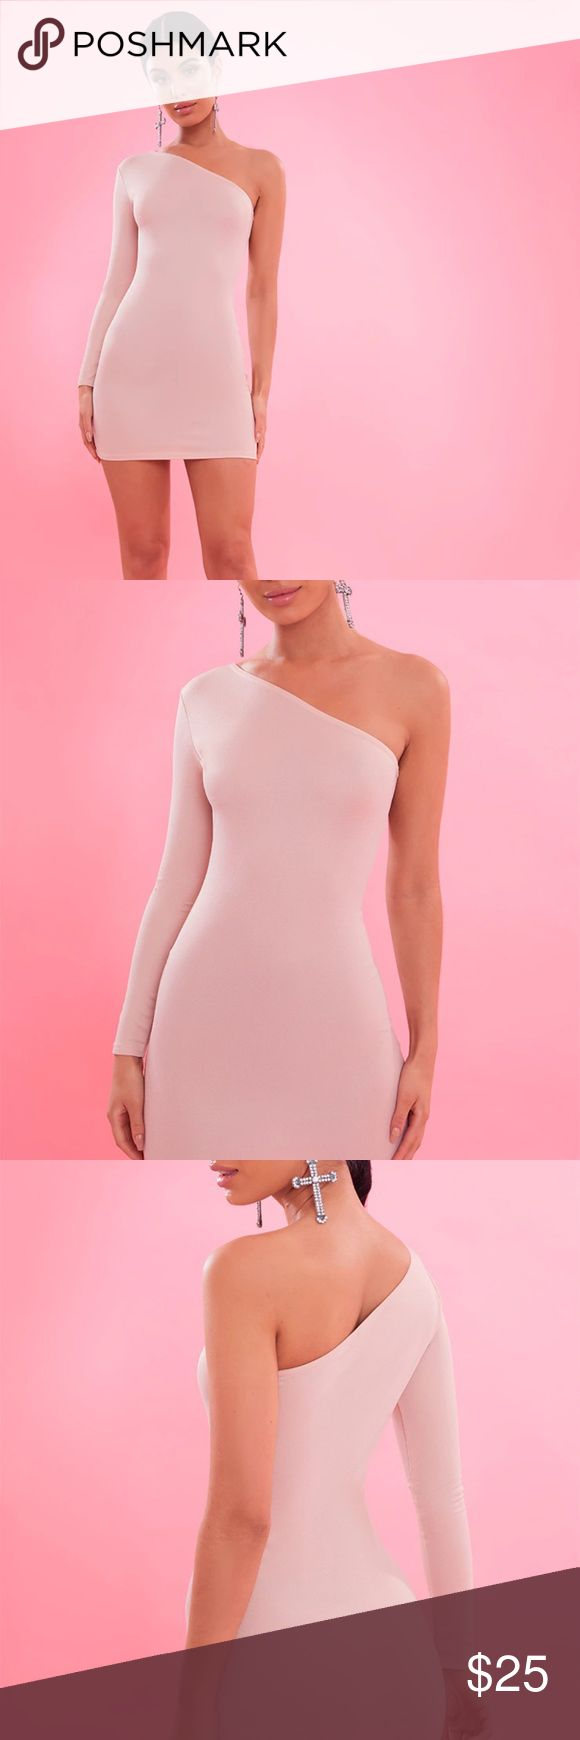 💥NWT💥nude one sleeve bodycon dress This nude bodycon in a crepe fabric is one to add to your wardrobe girl. In a flattering bodycon fit and feminine one shoulder style, team with statement earrings and heels for a lust-have look. Dresses Mini